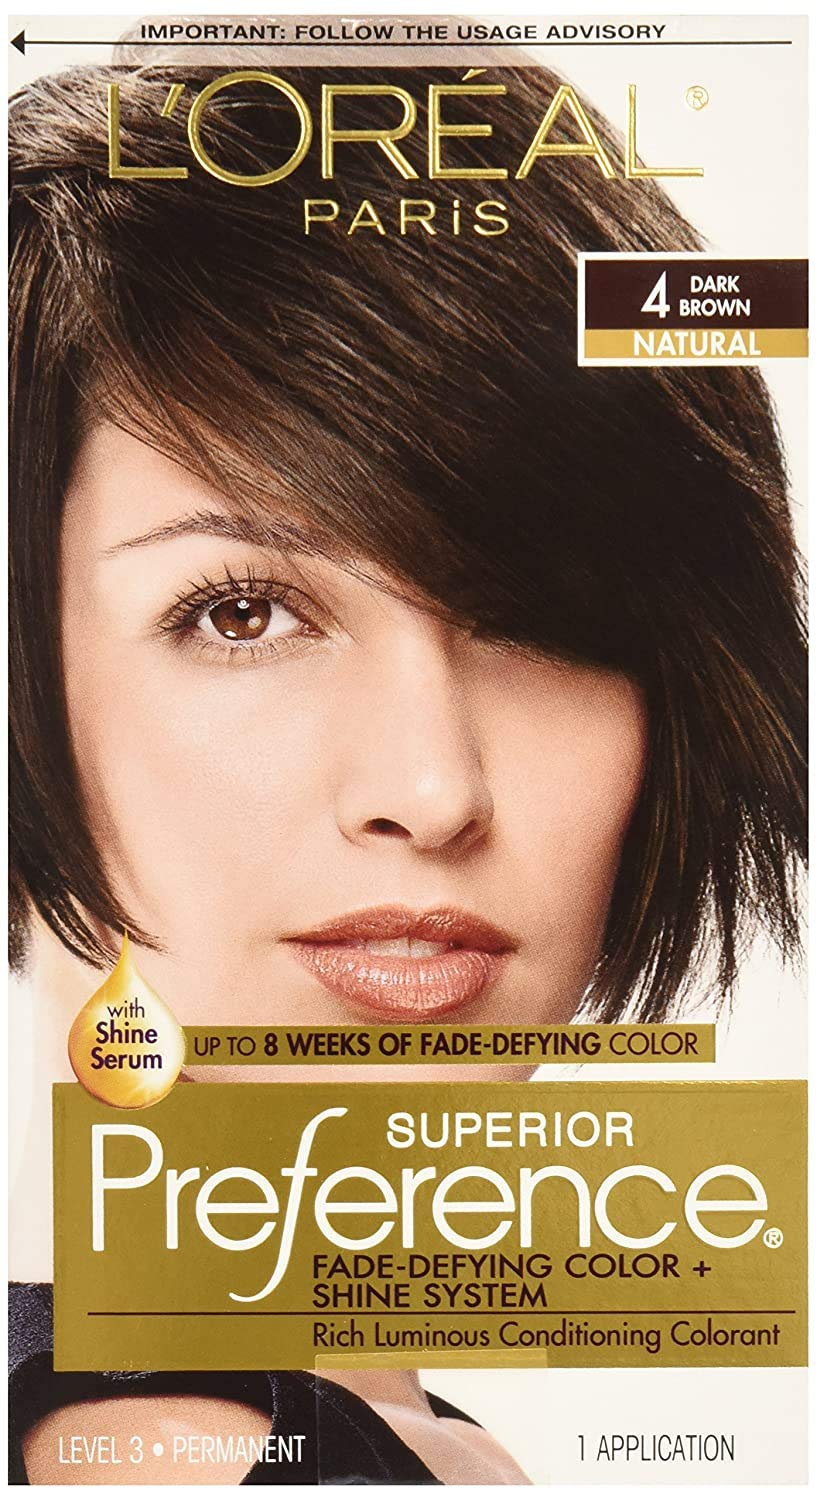 L'Oreal Paris Superior Preference Fade-Defying + Shine Permanent Hair Color, 4 Dark Brown, Pack of 1, Hair Dye